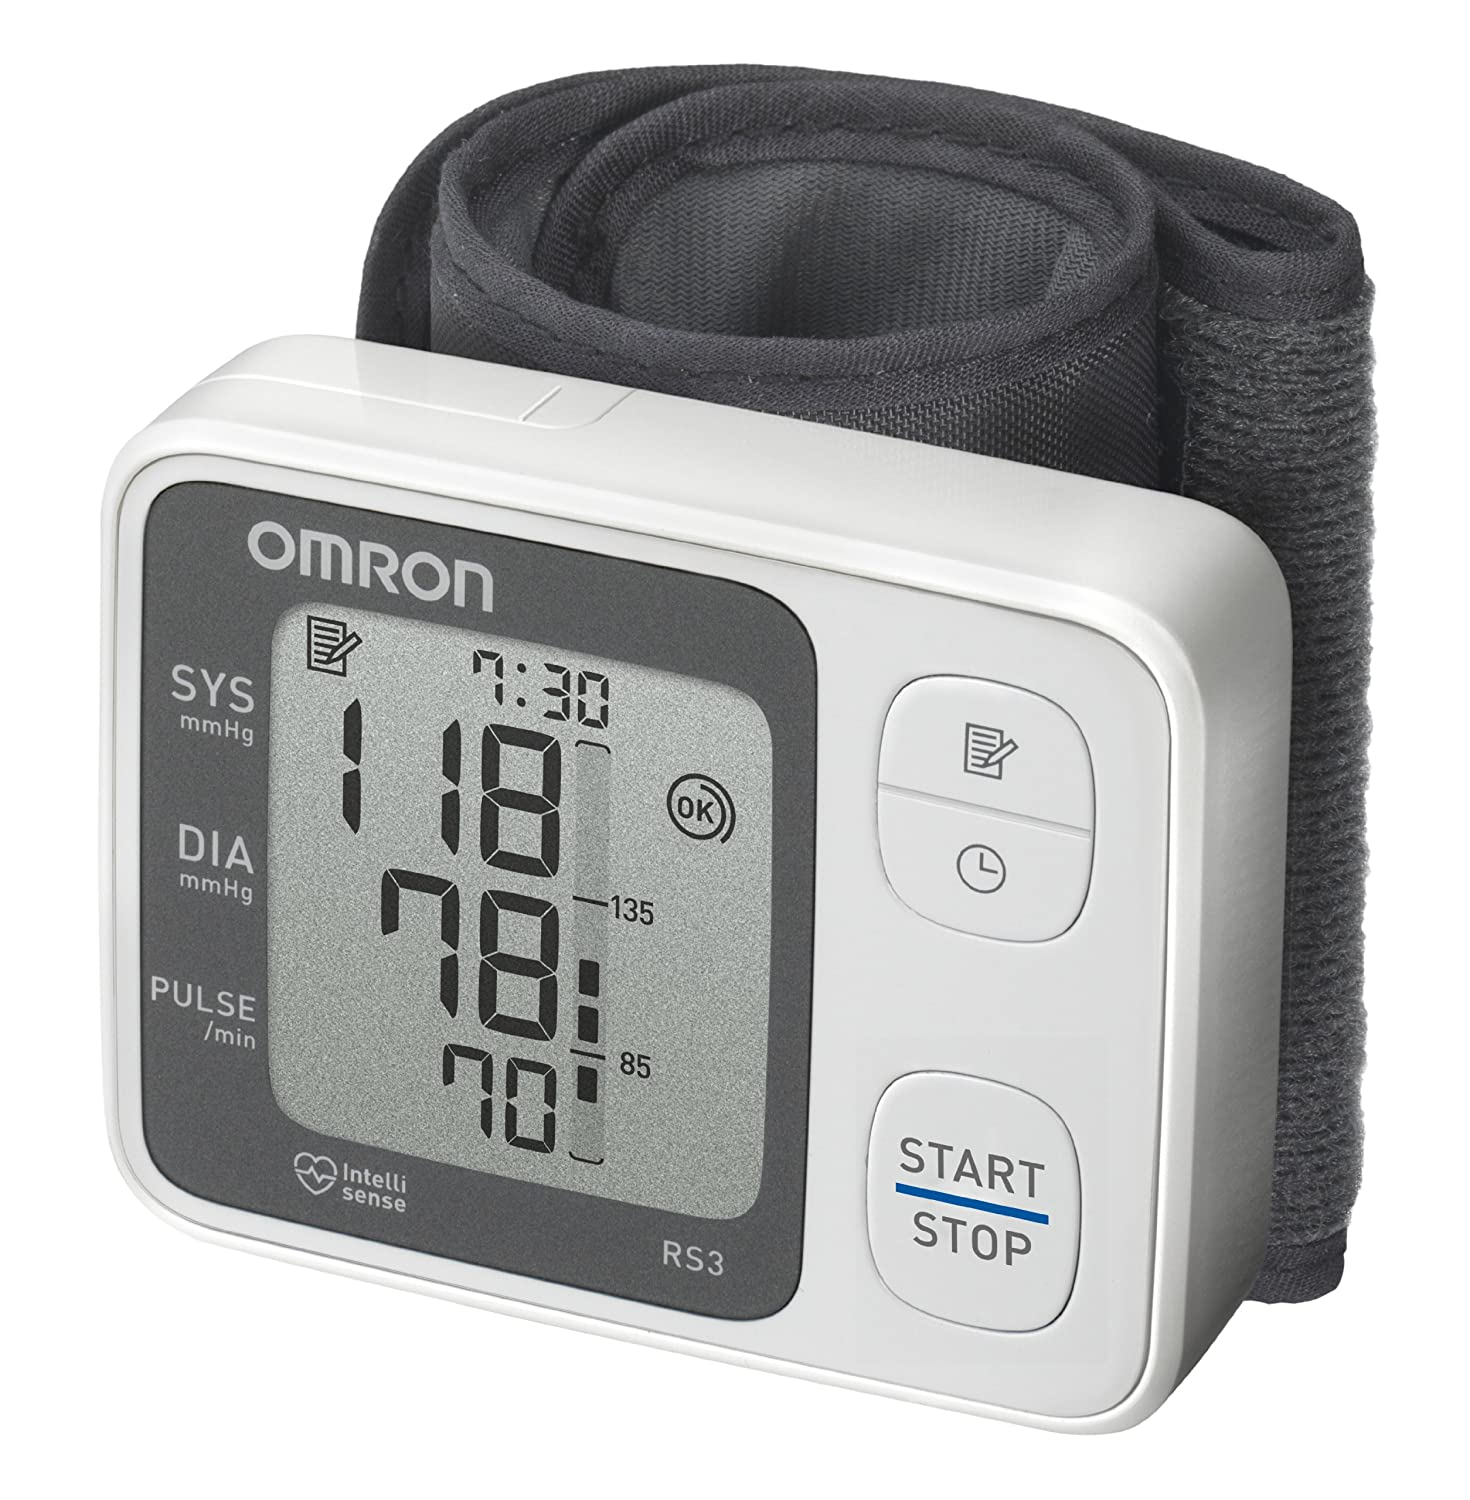 Amazon.com: Omron RS3 Wrist Blood Pressure Monitor: Health ...